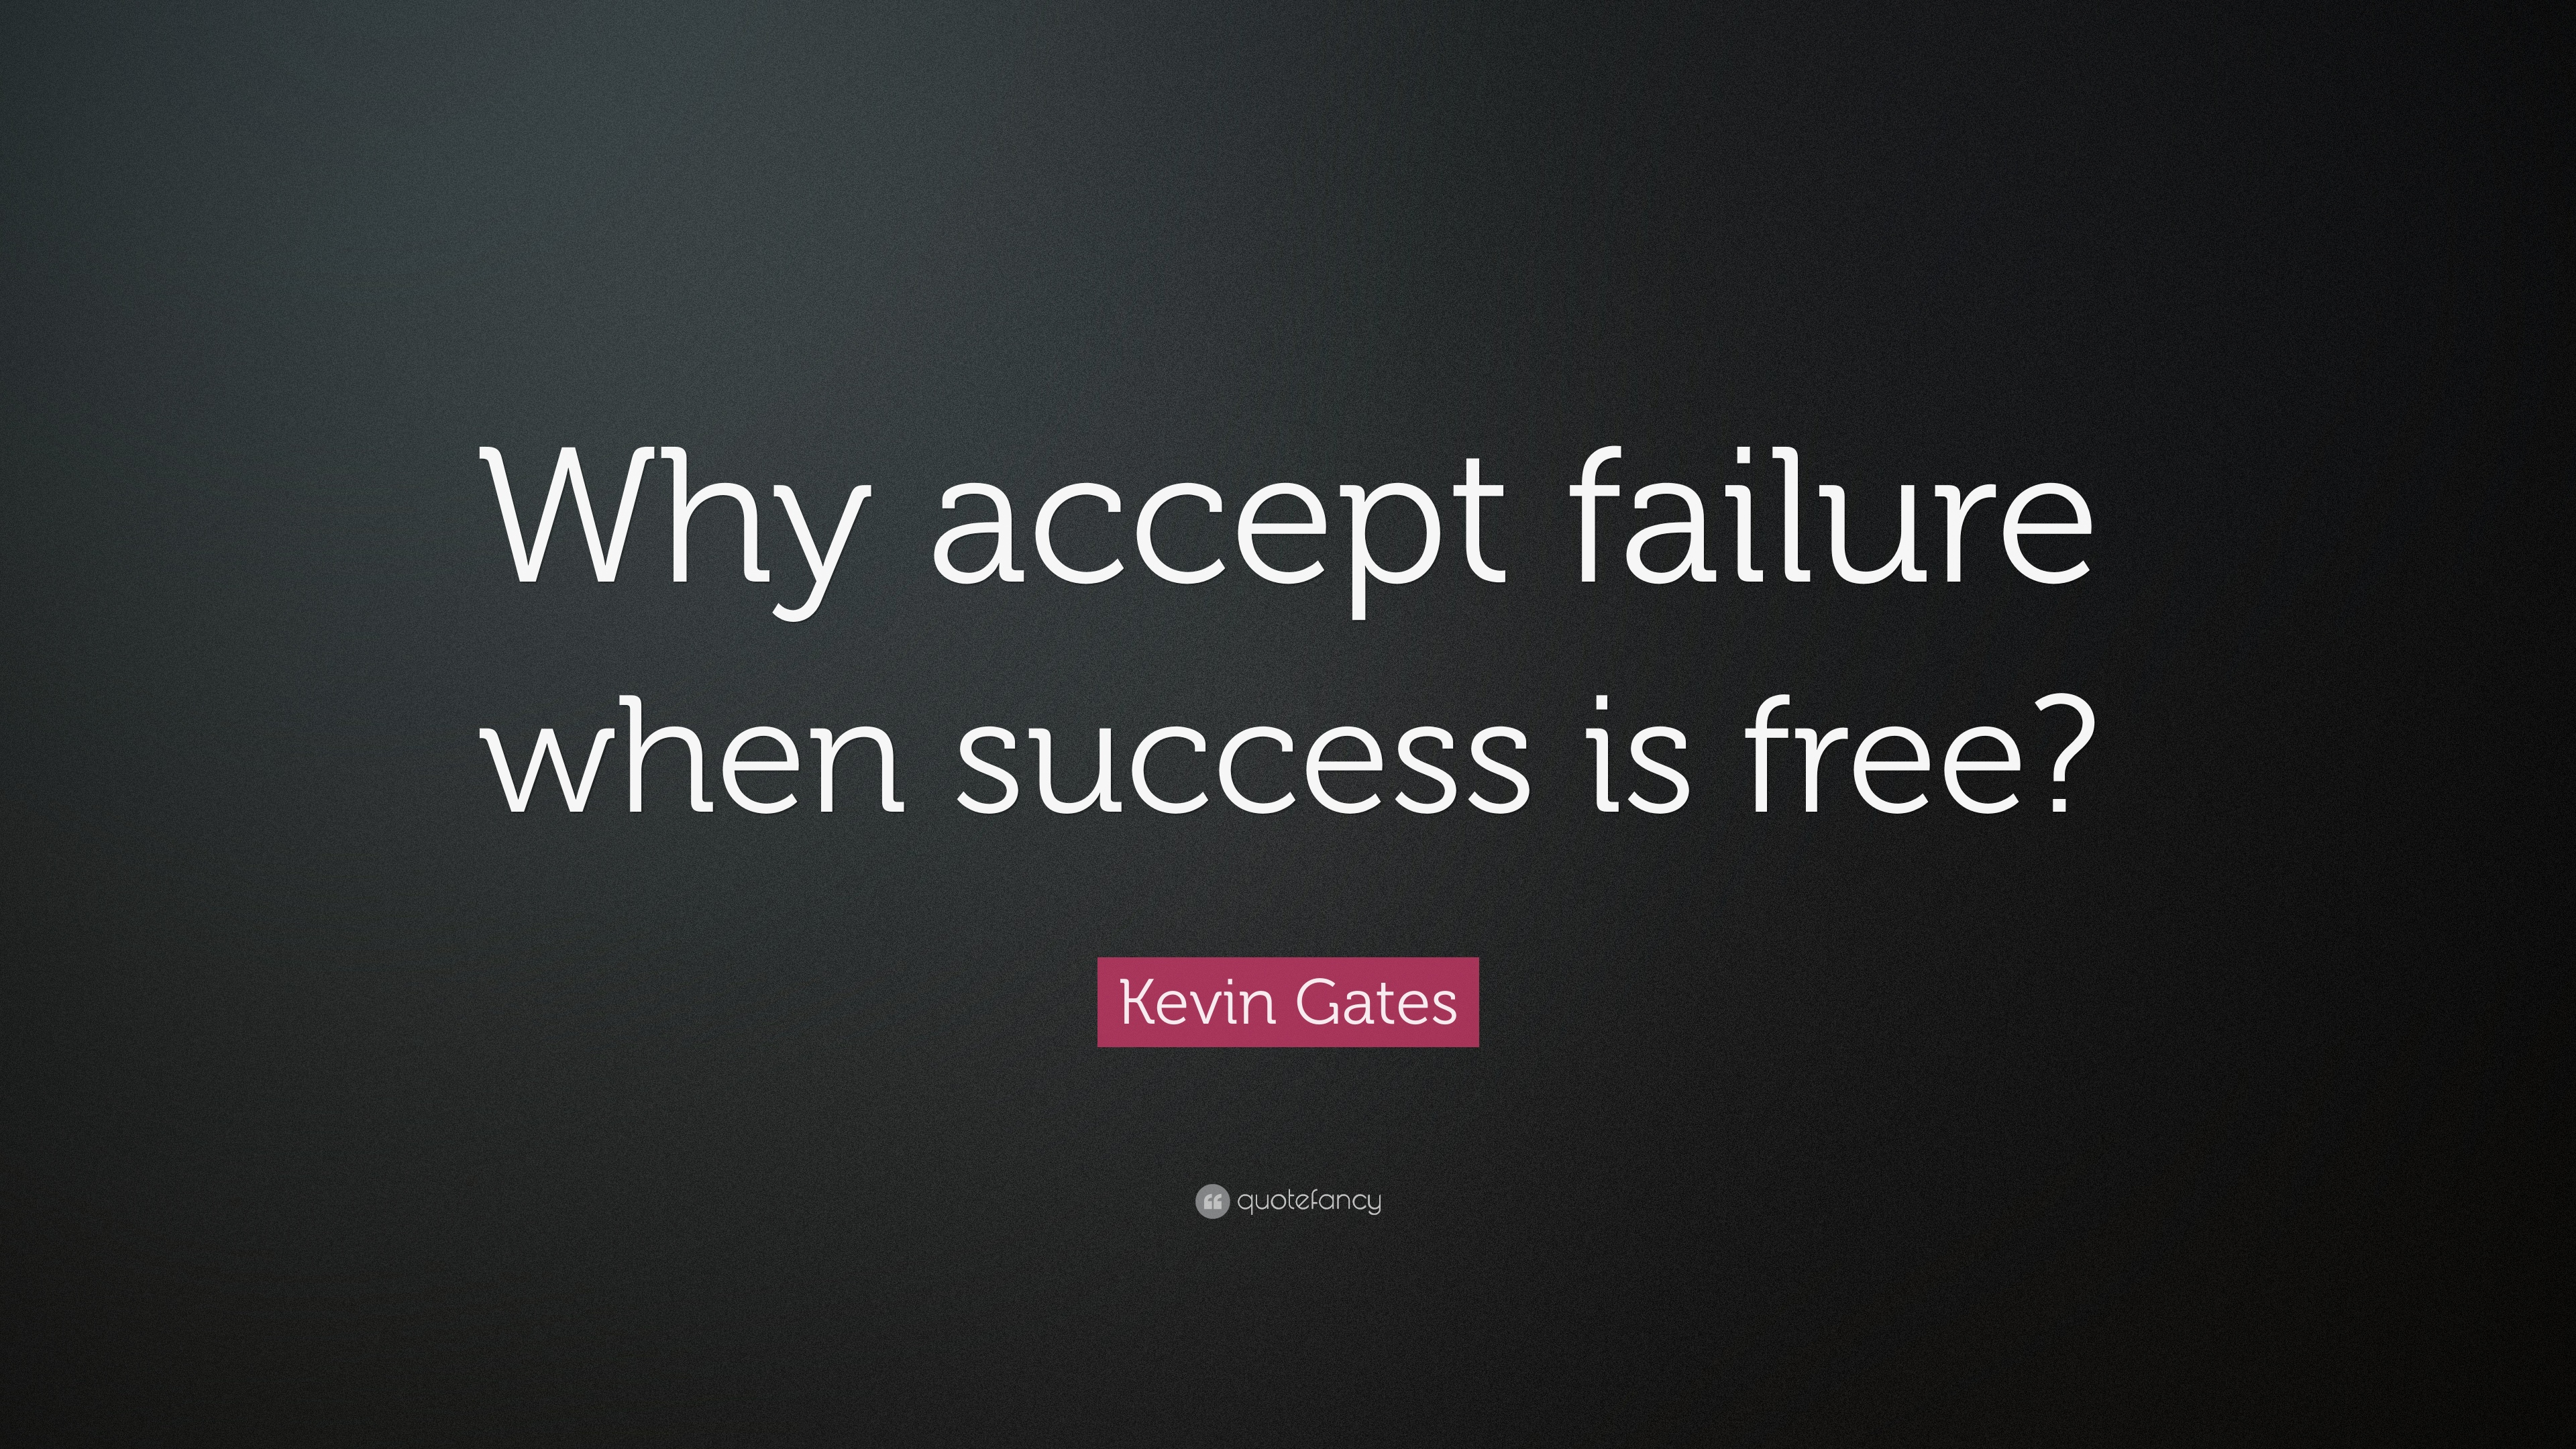 Kevin Gates Quotes Amusing Kevin Gates Quotes 5 Wallpapers  Quotefancy